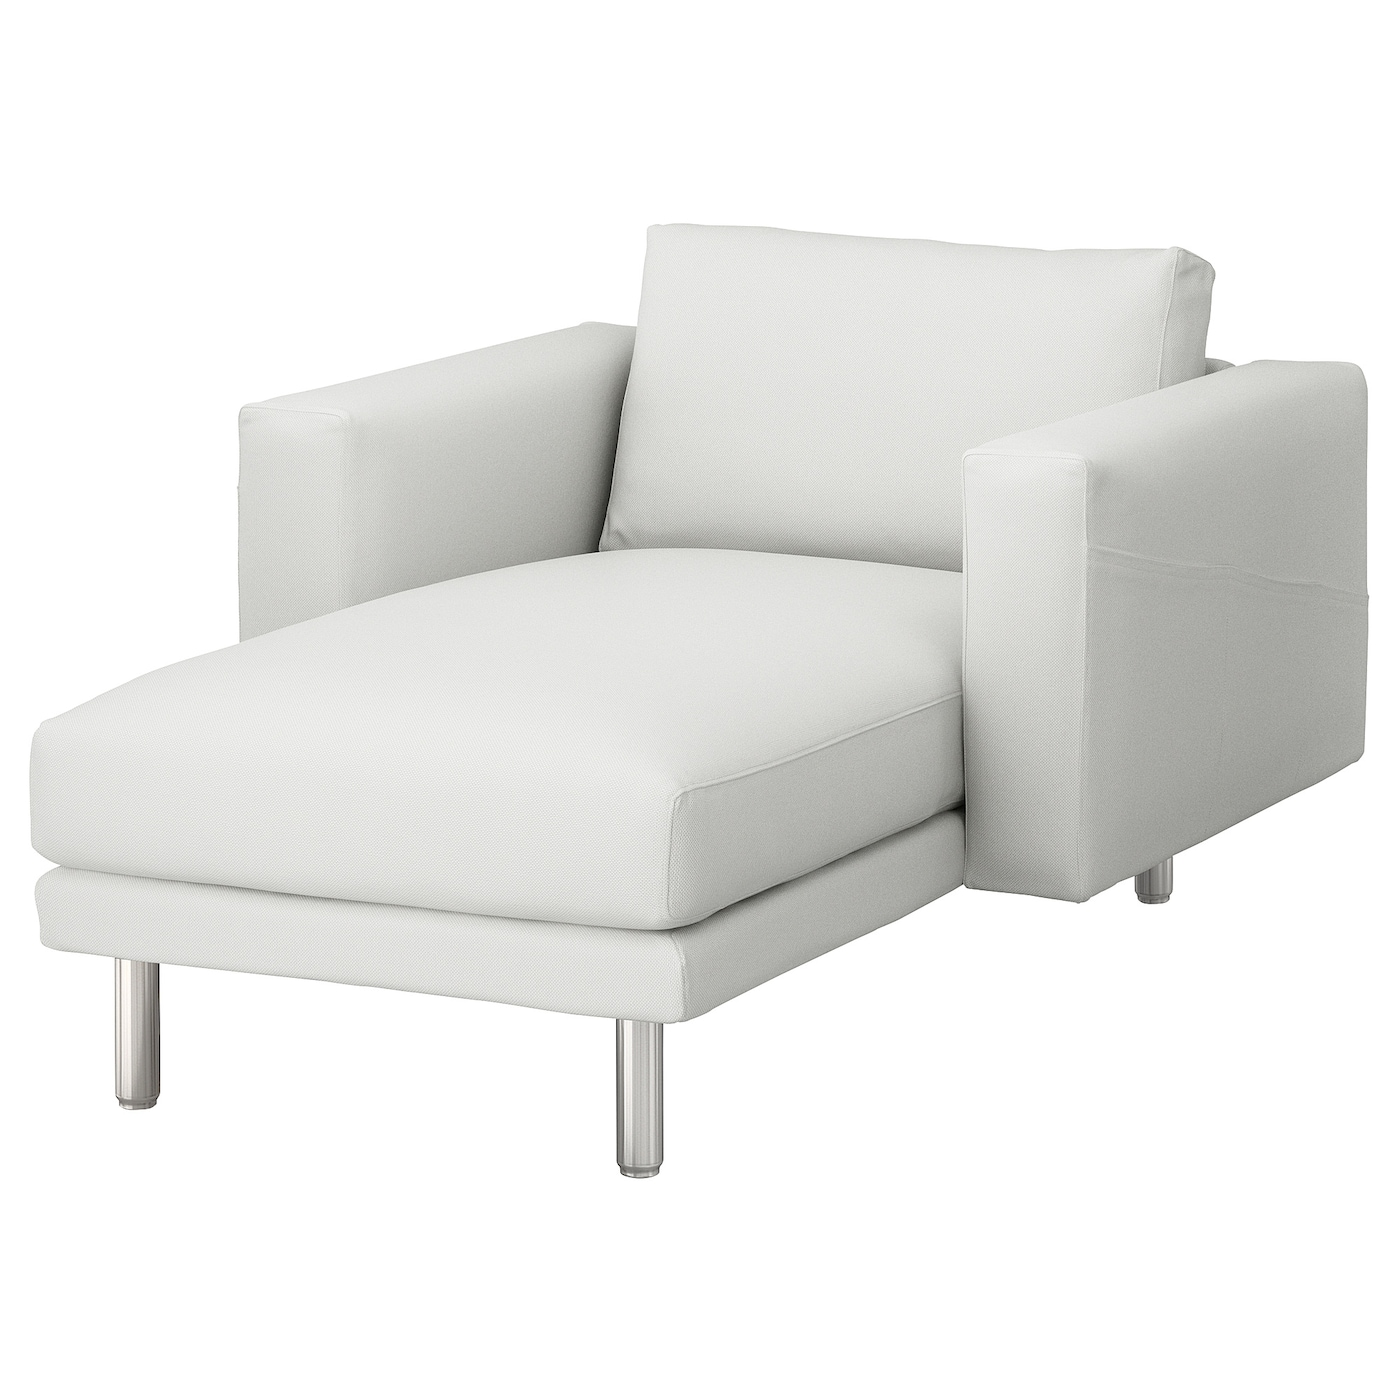 Norsborg chaise longue finnsta white metal ikea for Chaise longue aluminium et textilene